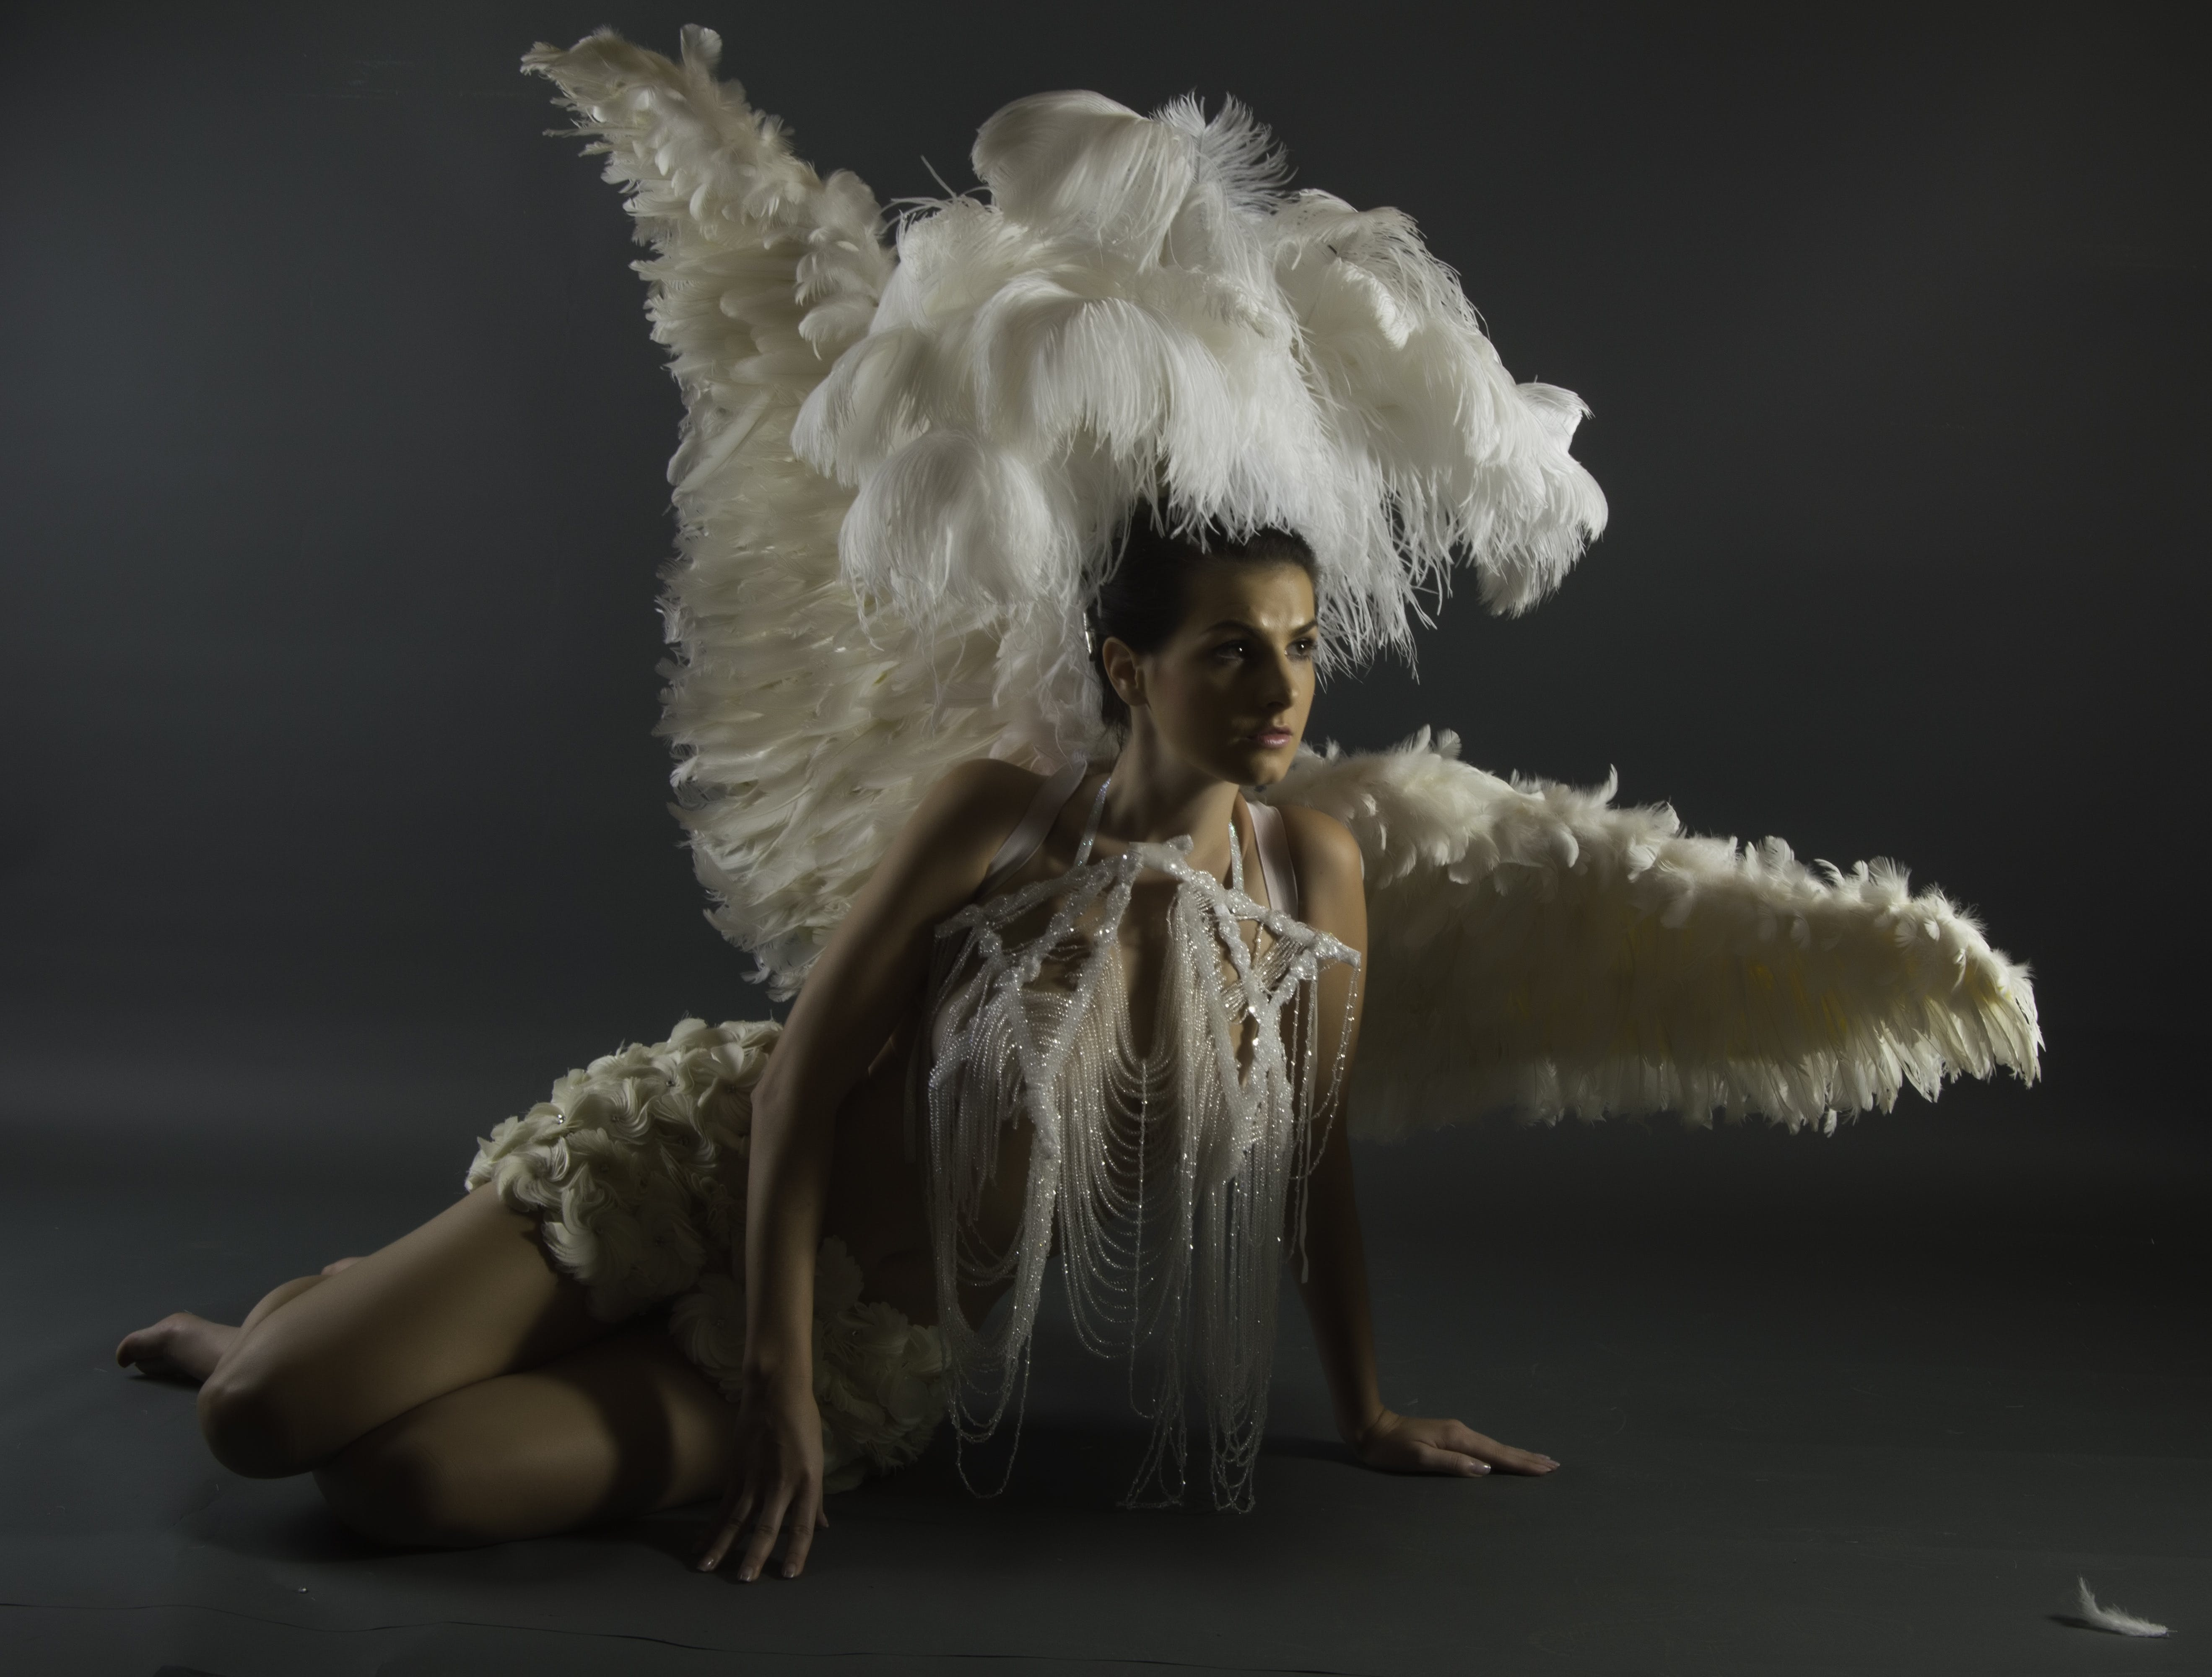 Woman in White Wings With Headdress